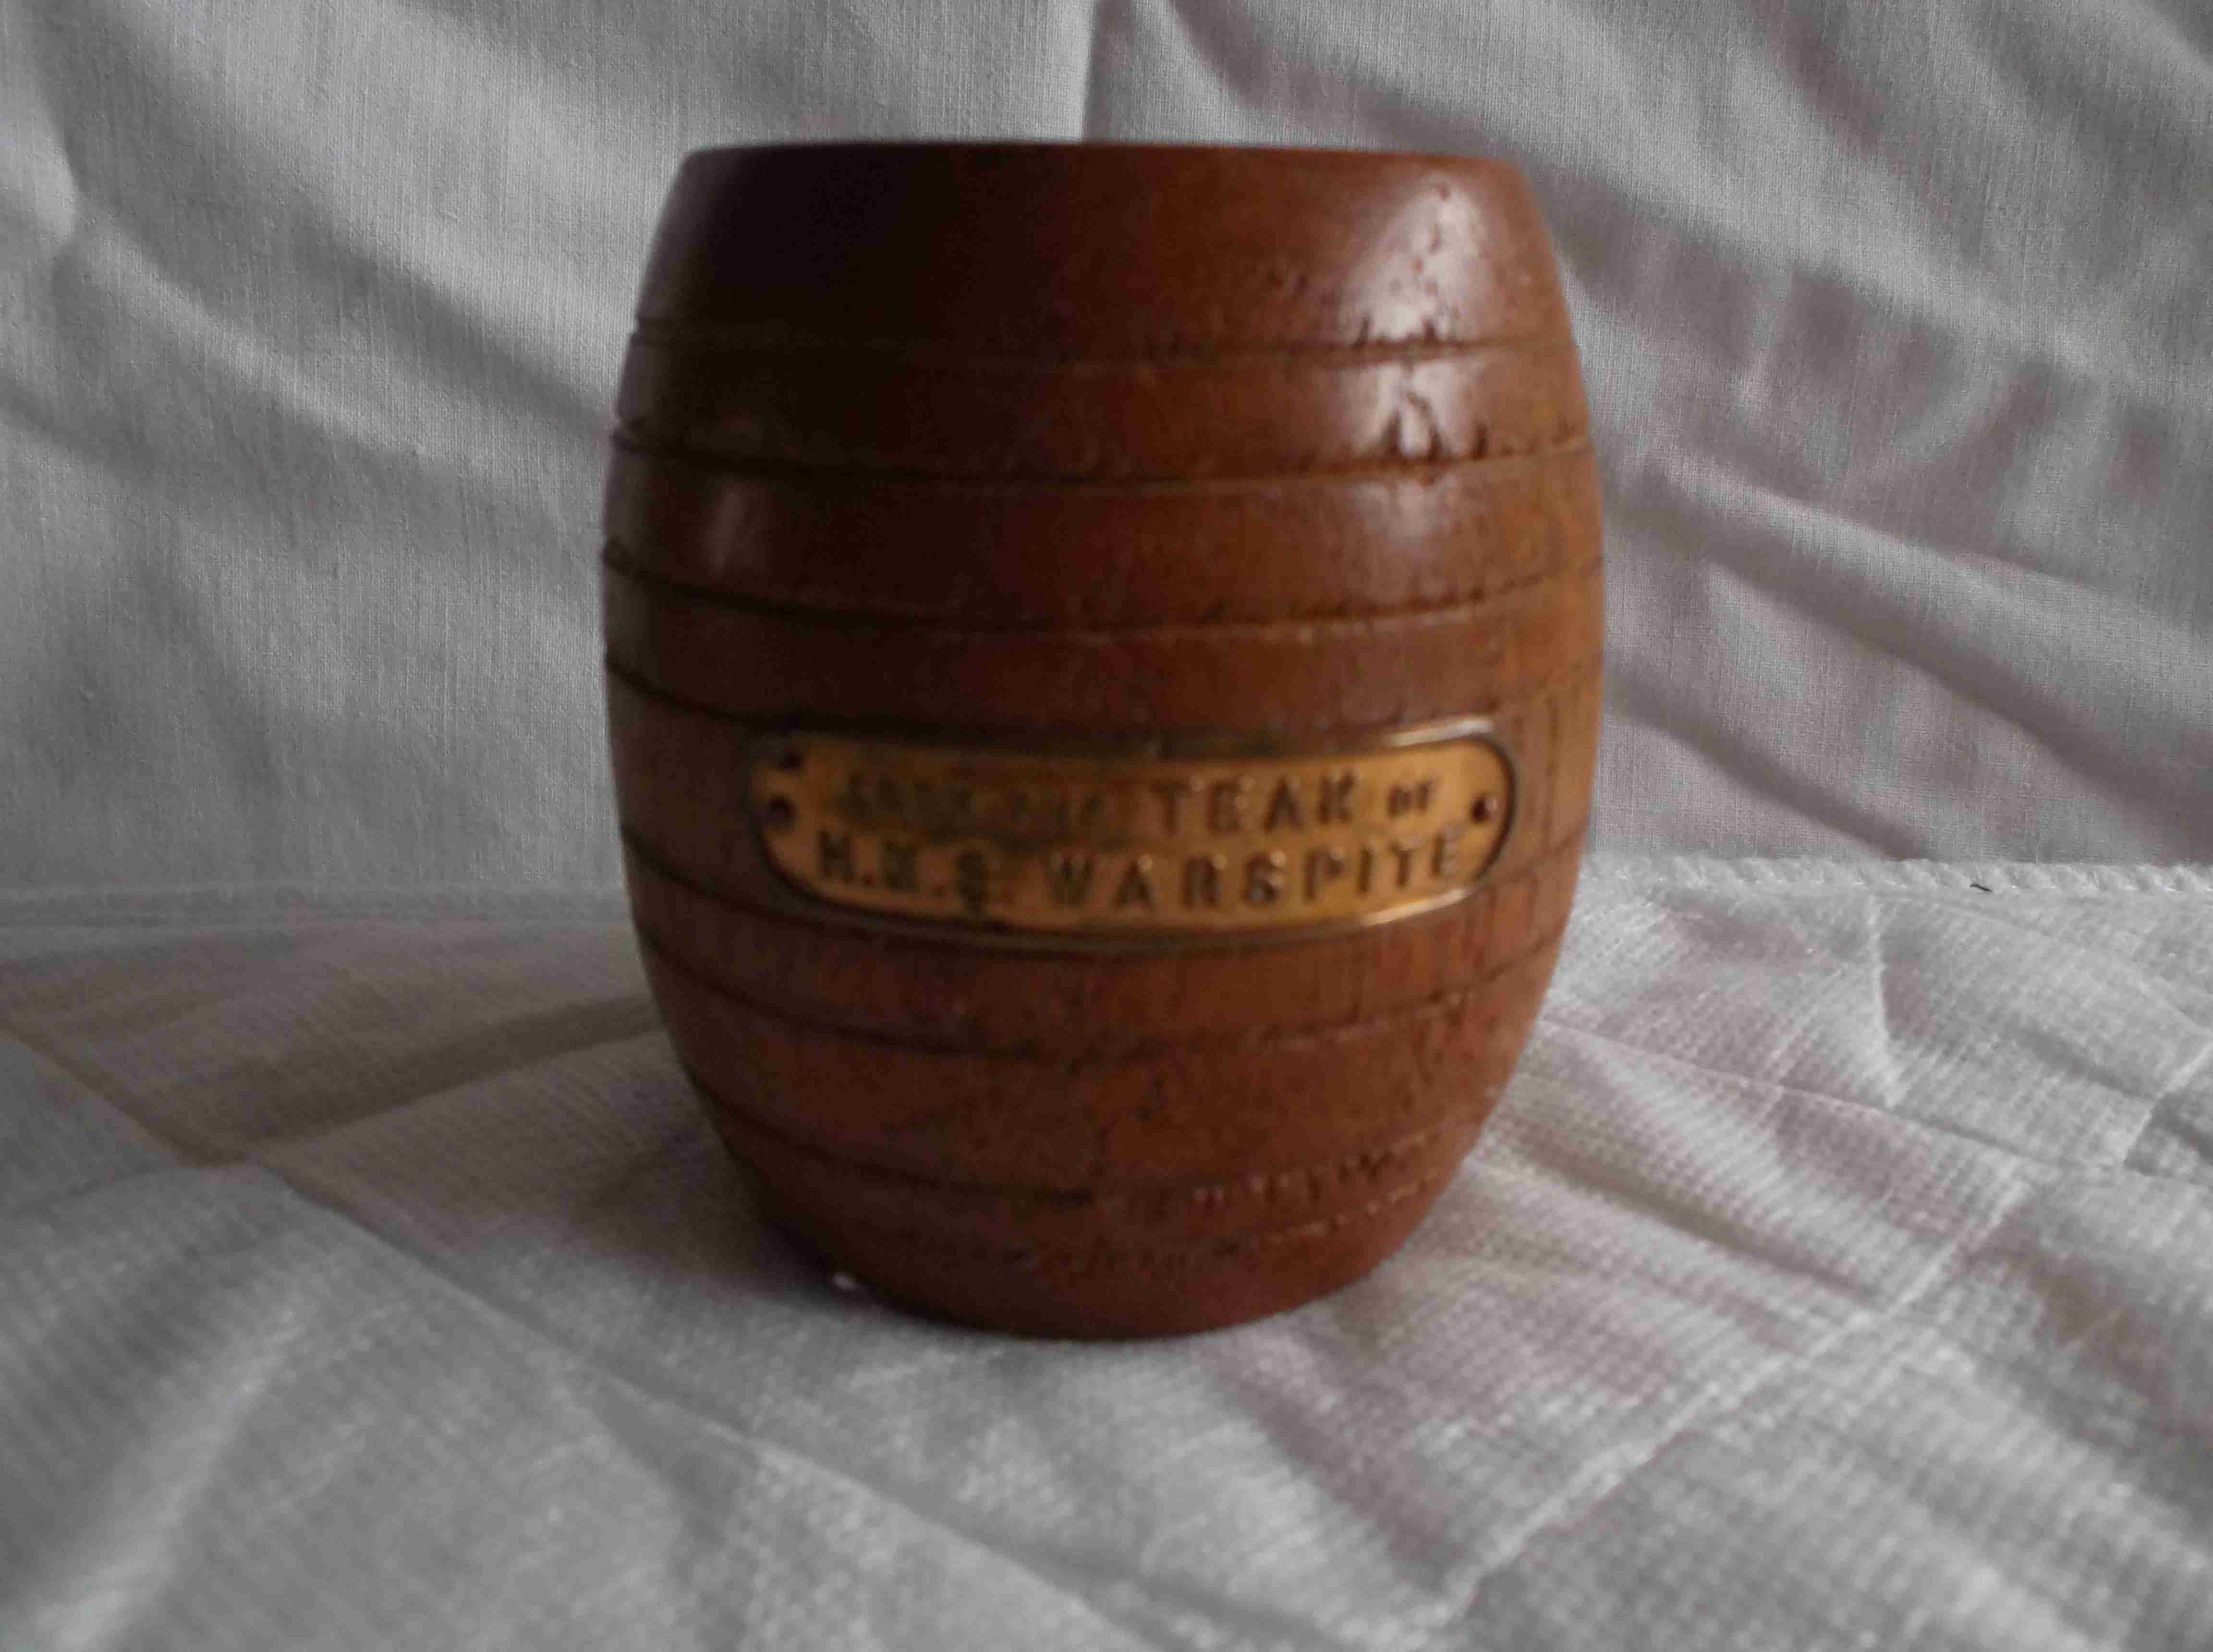 WOODEN BARREL MADE FROM THE REMAINS OF THE ROYAL NAVAL VESSEL HMS WARSPITE